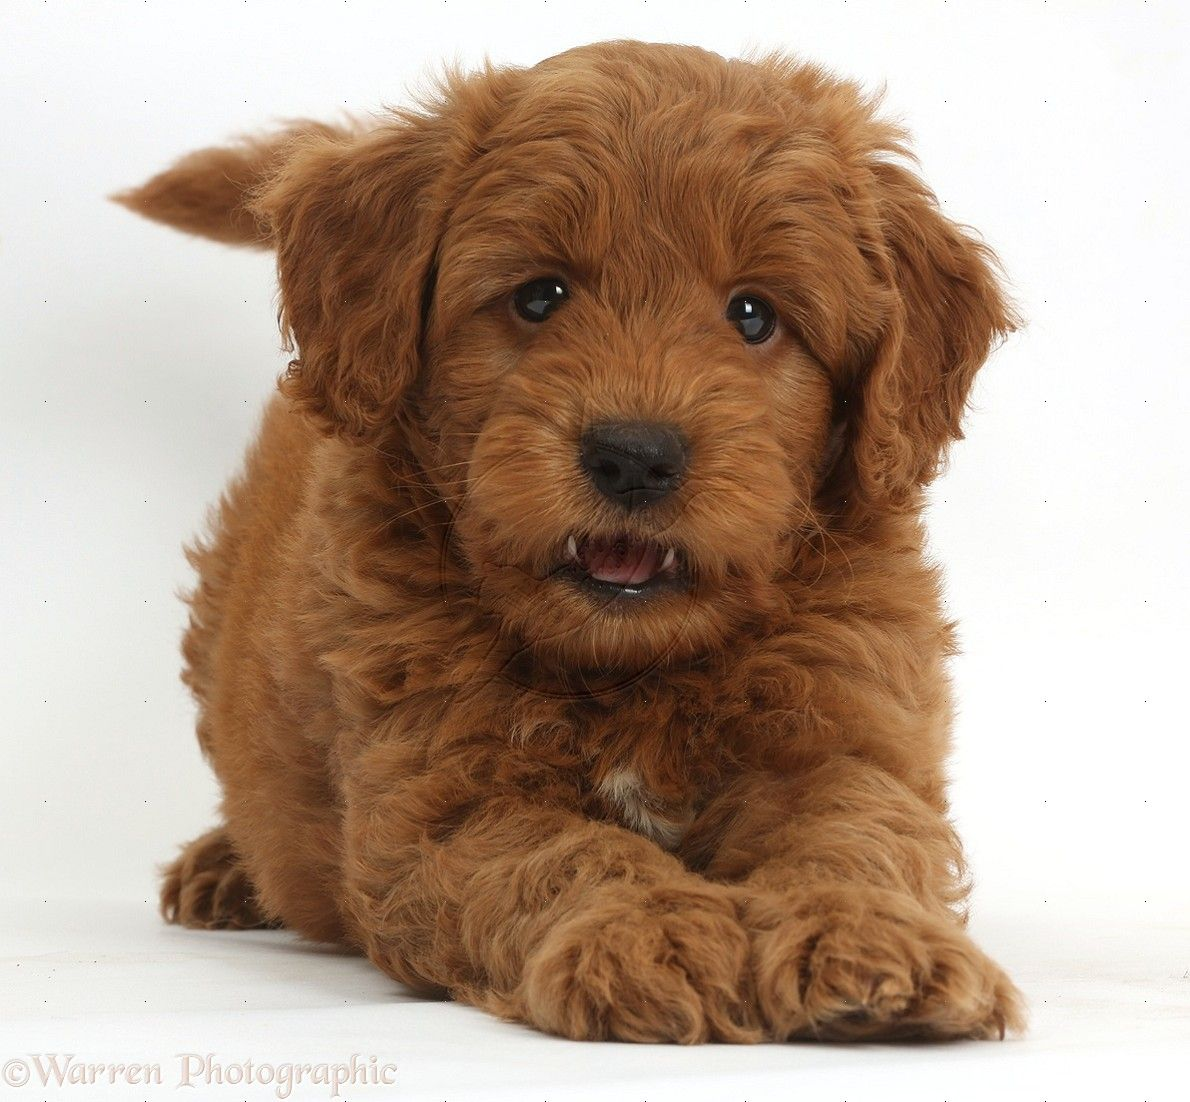 goldendoodle puppies Google Search F1b goldendoodle